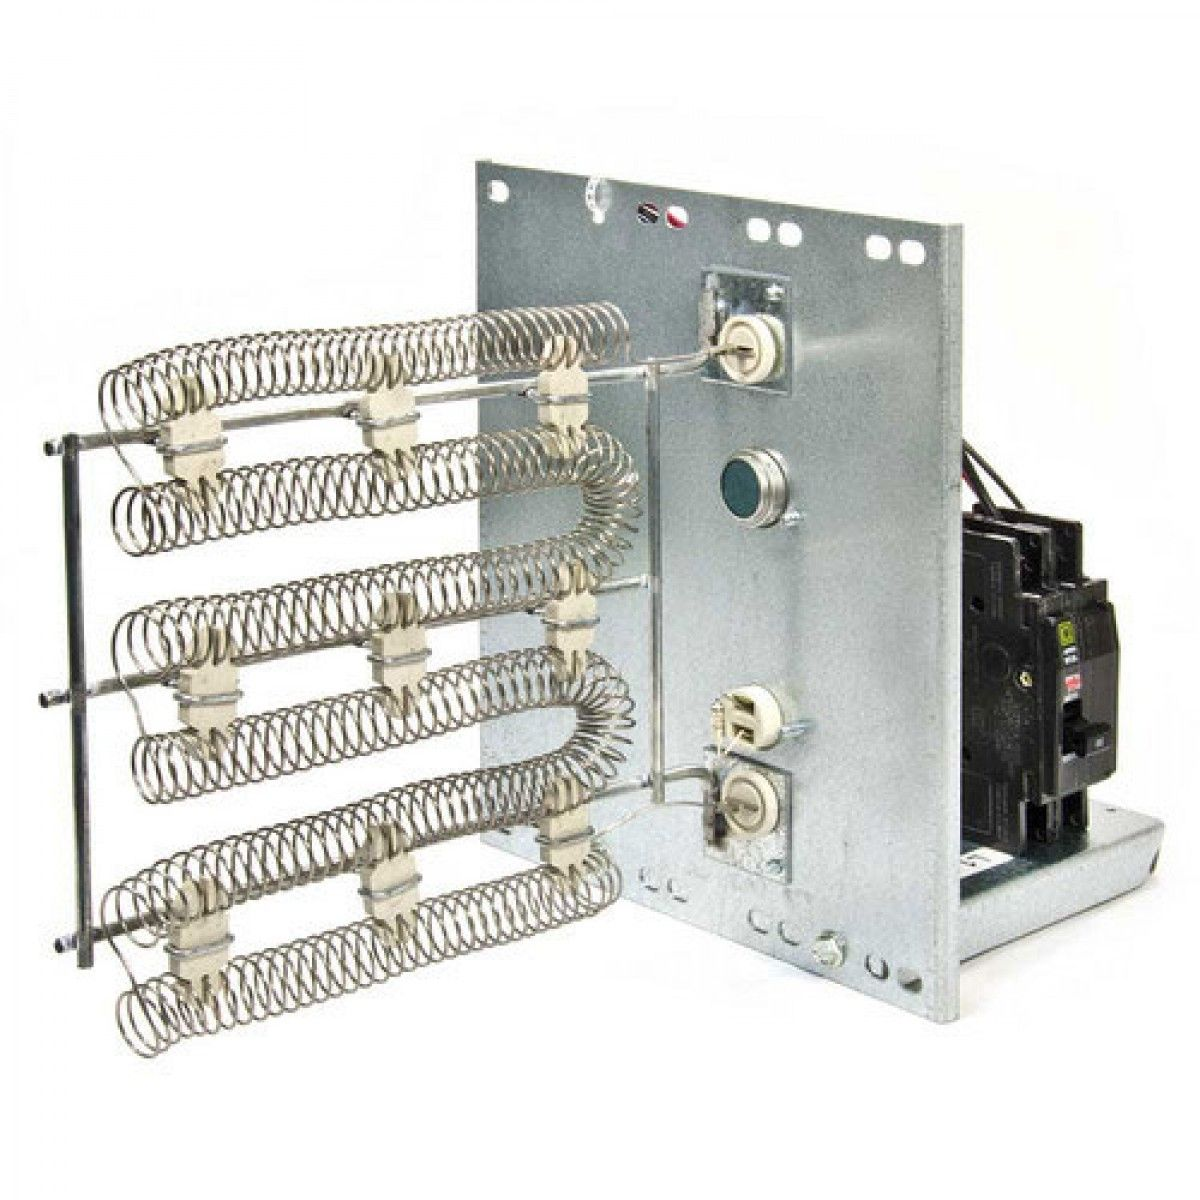 15kw Air Handler Wiring Diagram Just Another Blog Furnace Carrier Goodman Electric Hksc15xc Heat Kit W Breaker For Handlers Rh Acdirect Com